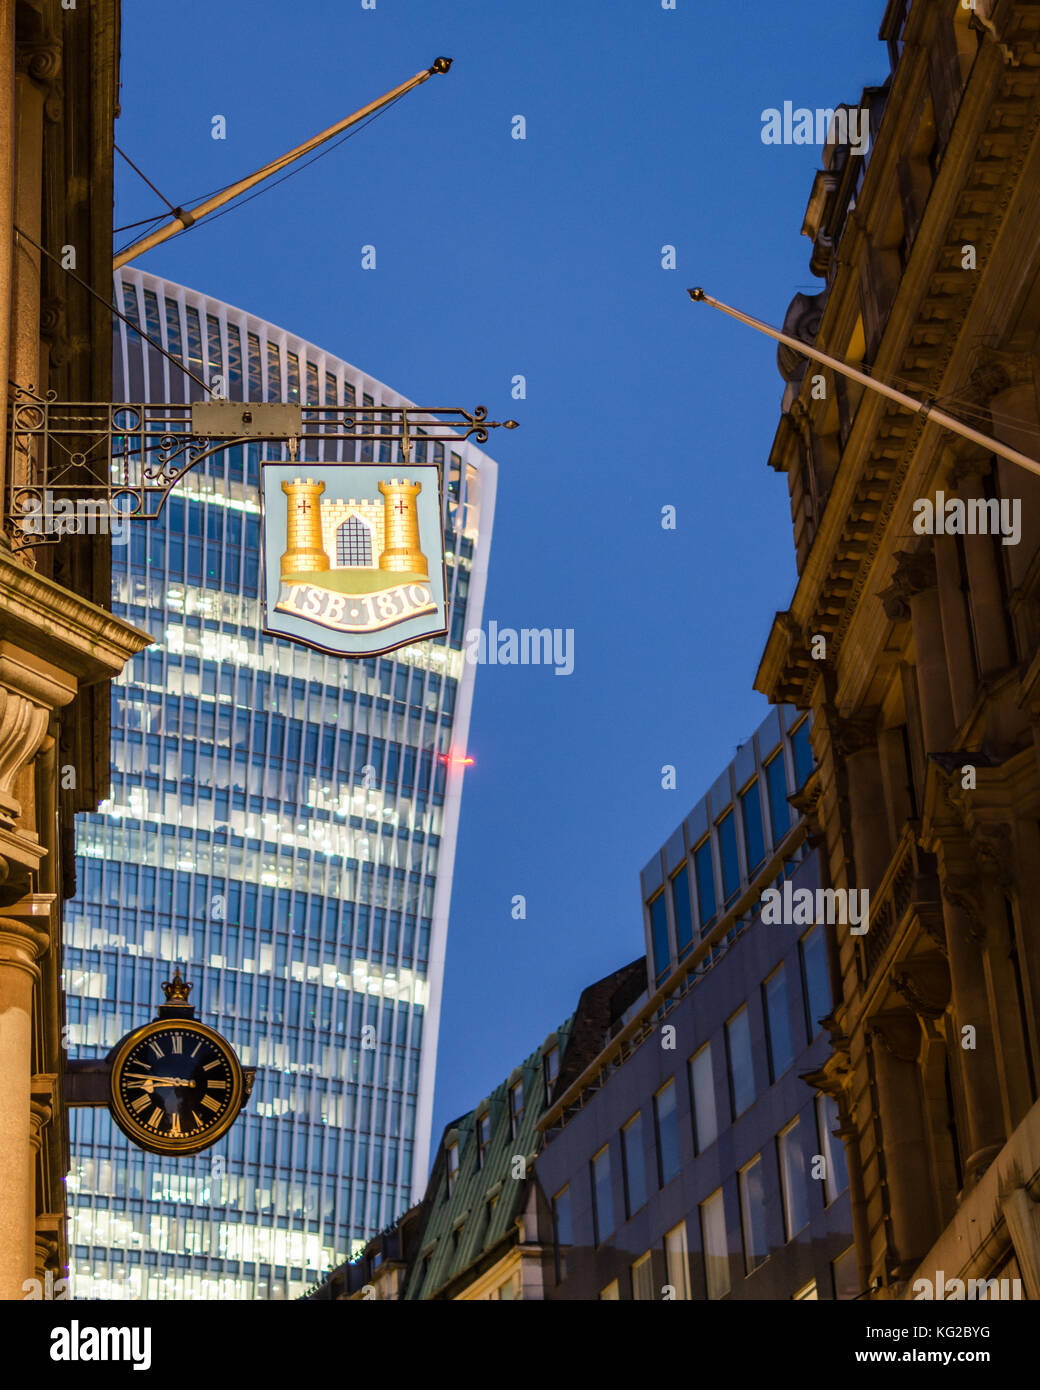 Hanging sign TSB in Lombard Street, London, superimposed on distant view of 20 Fenchurch St, Walkie Talkie building, - Stock Image